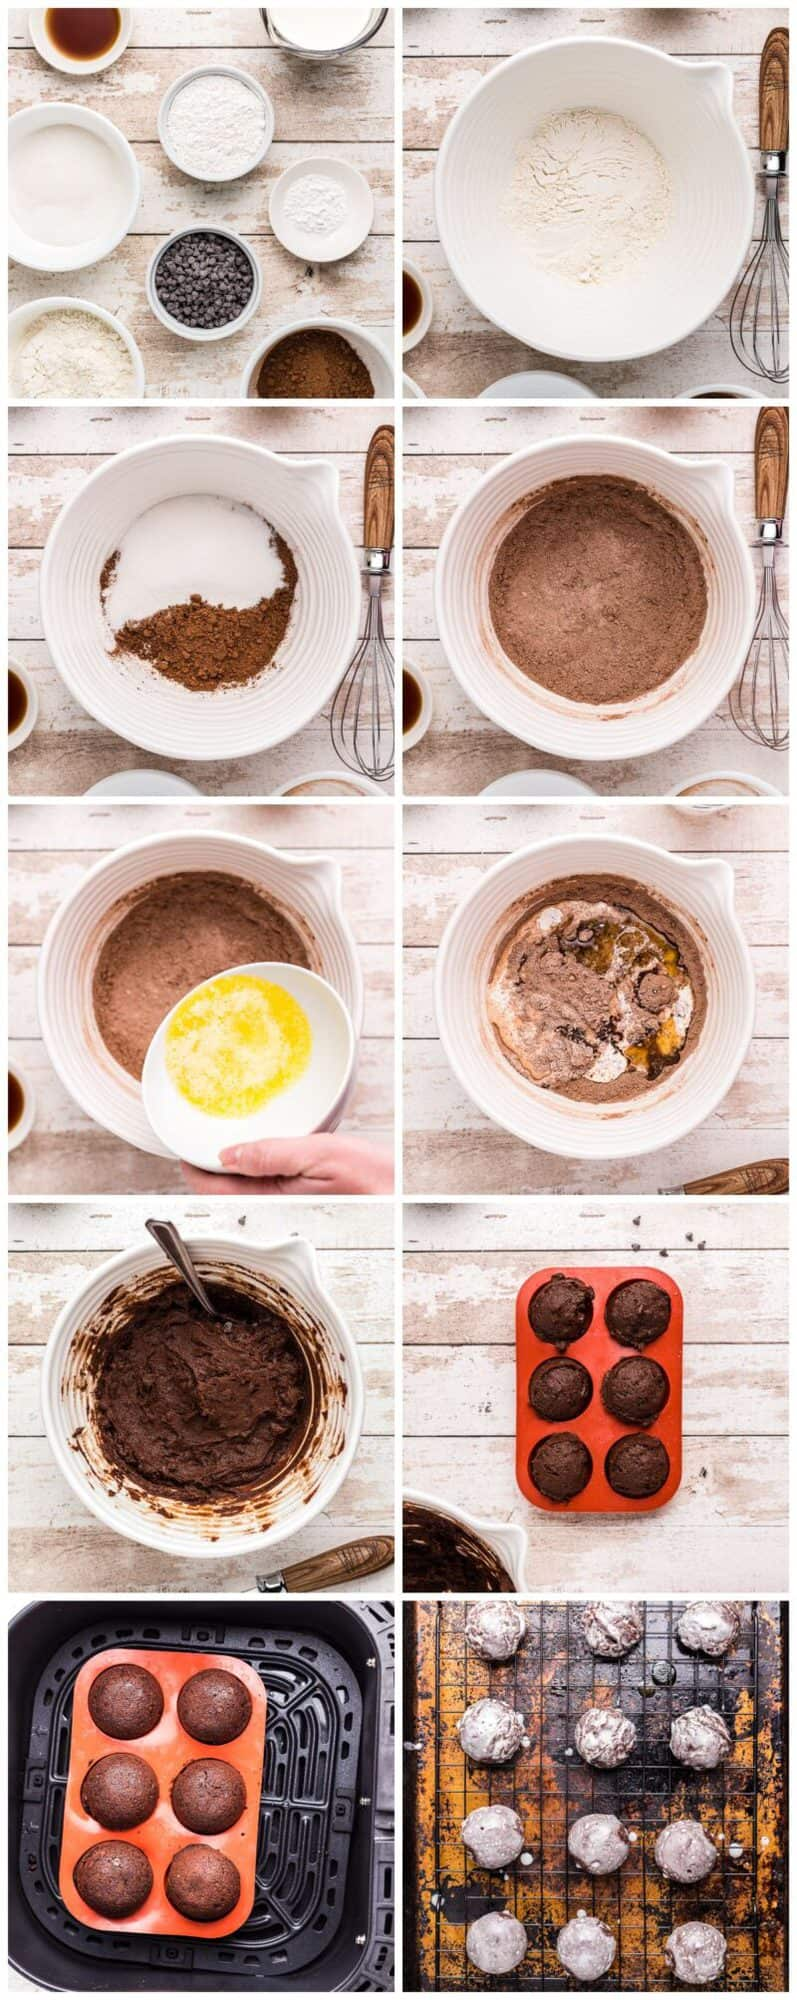 step by step photos for how to make chocolate donut holes in an air fryer